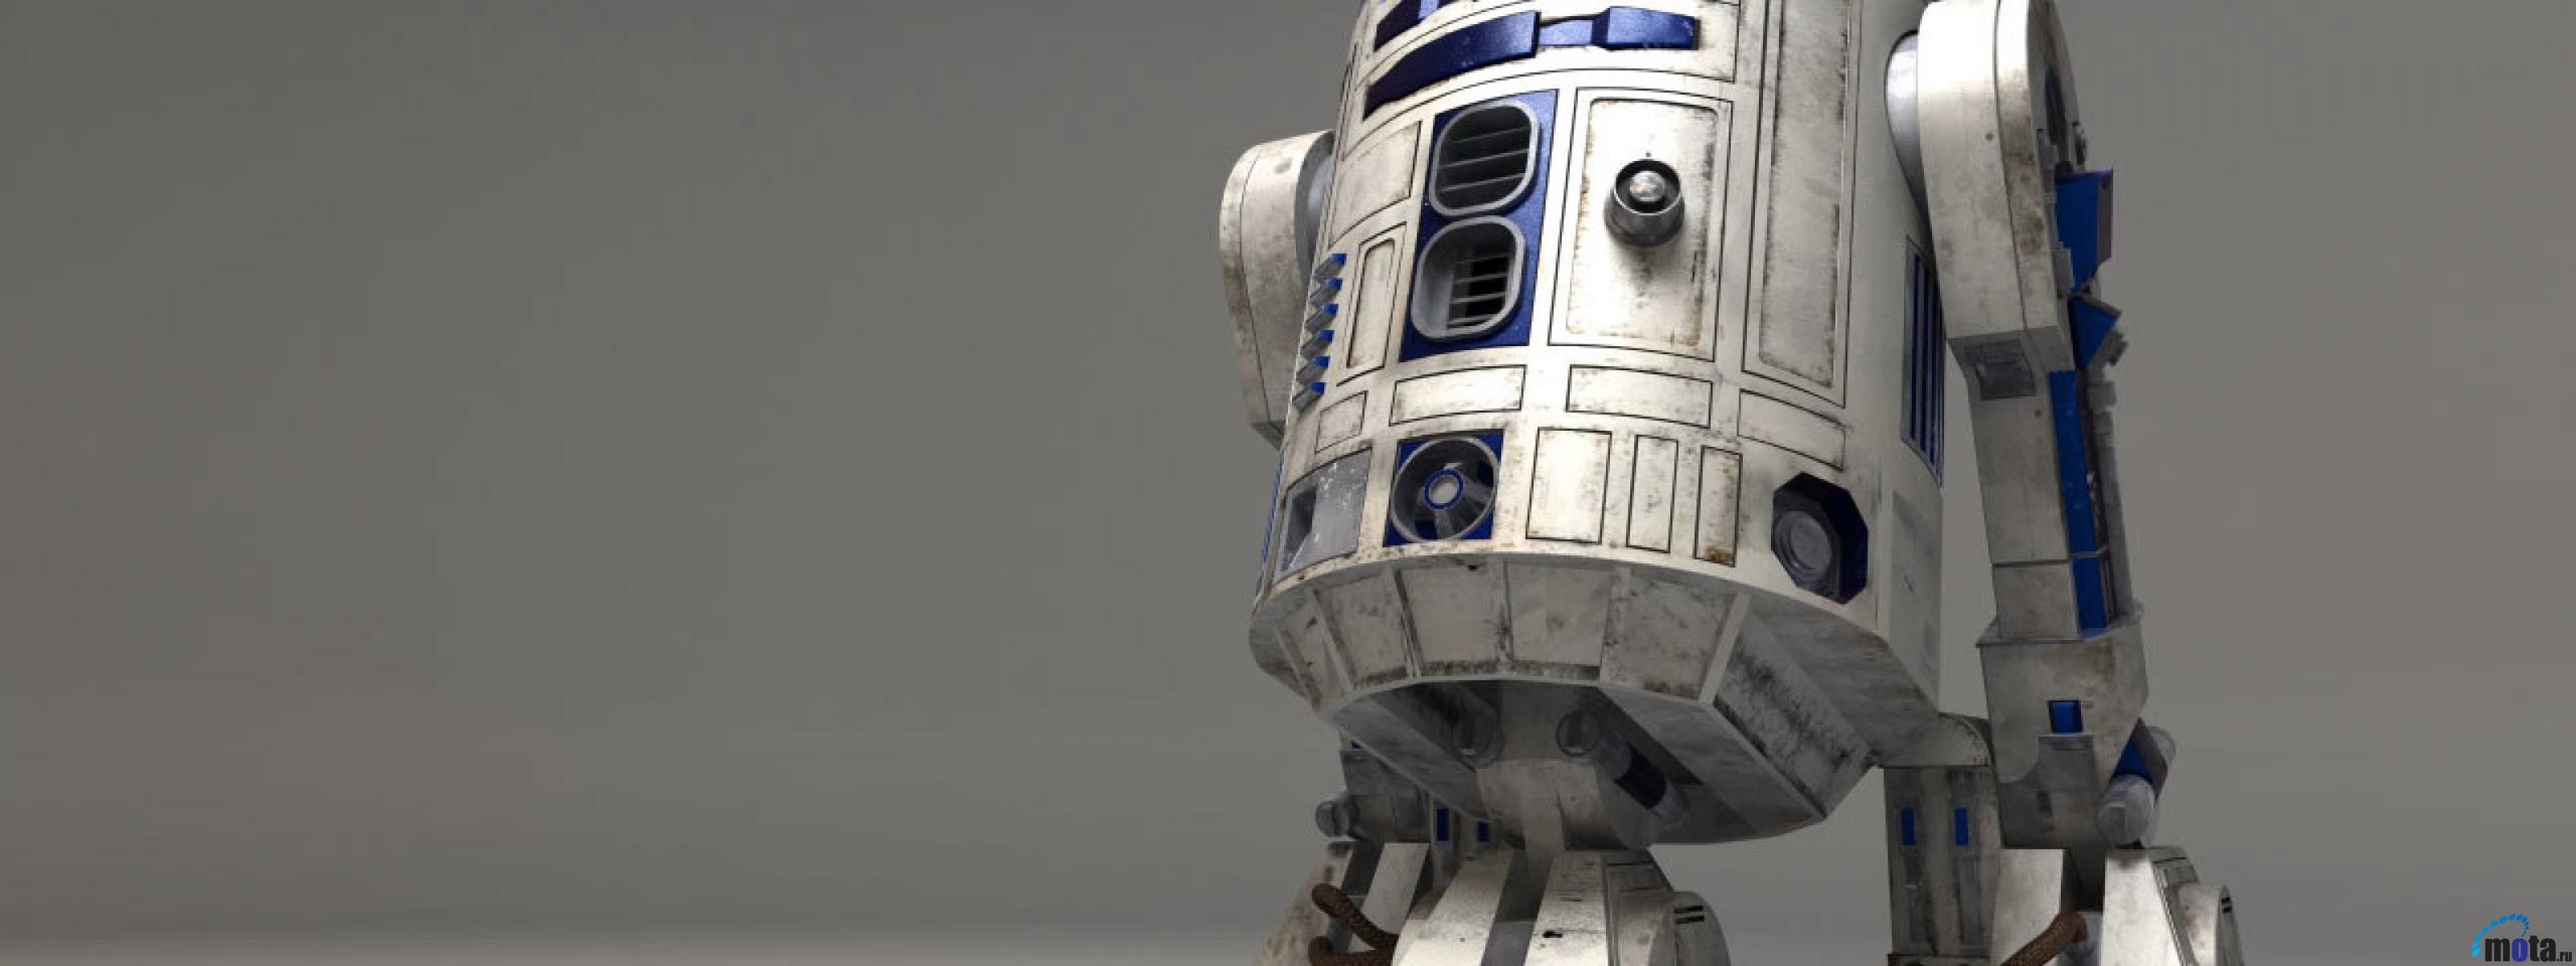 "894x894 R2d2 Wallpaper Android | Gendiswallpaper.com"">"